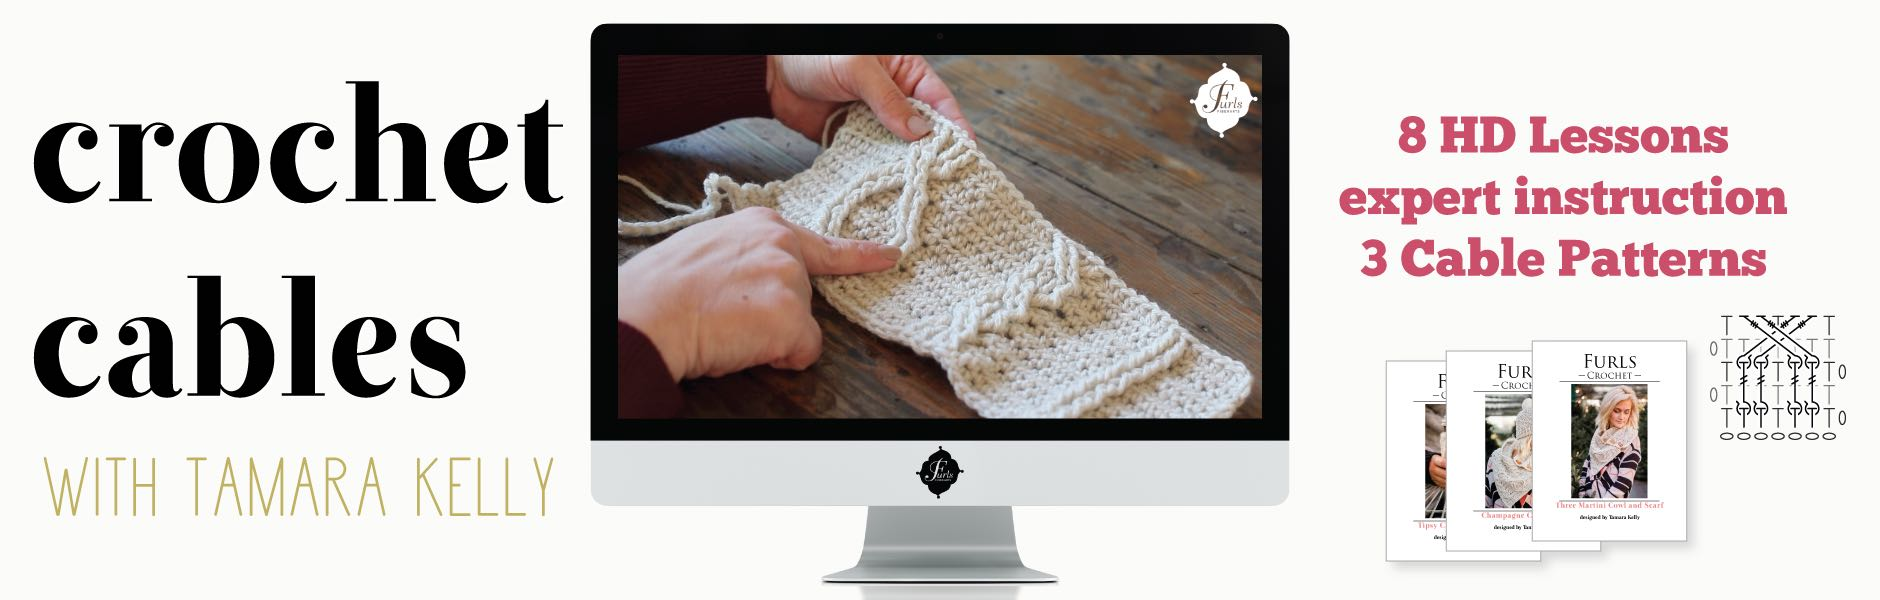 Crochet Cables with Tamara Kelly